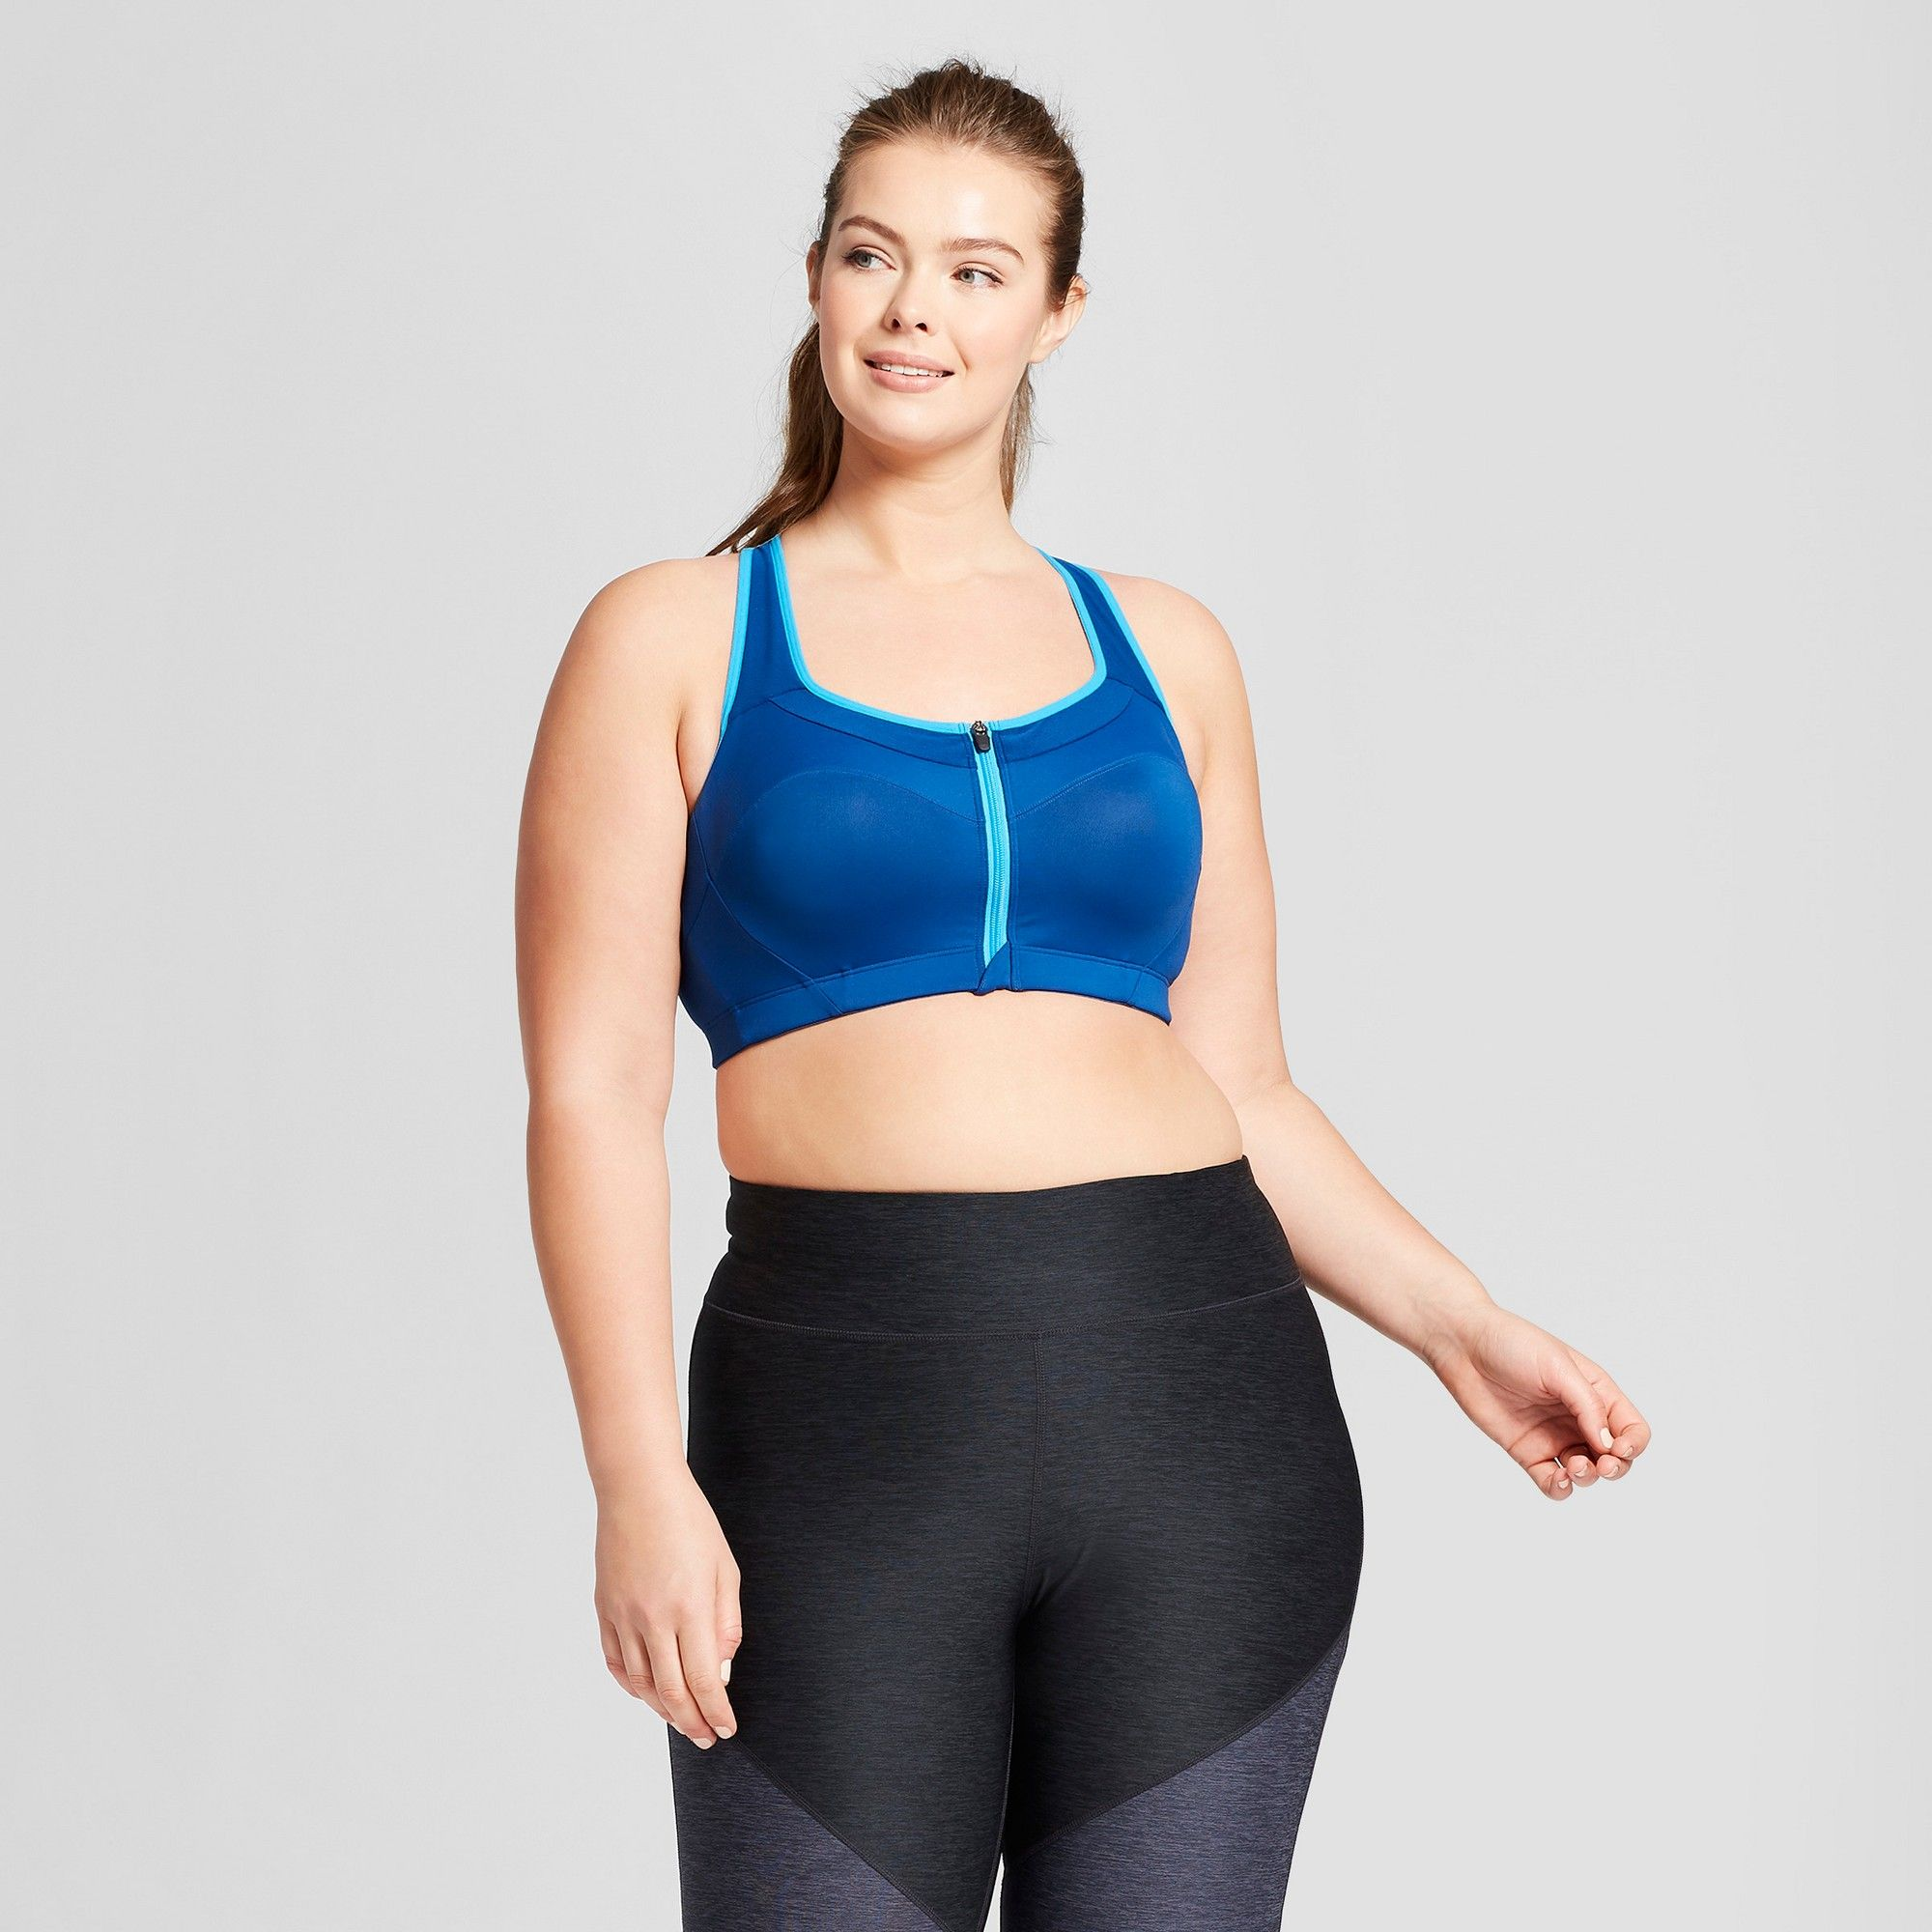 aa0398c2158e4 Women s Plus-Size Power Shape Max Support Front-Close Sports Bra - C9  Champion Winter River Blue   Hydro Blue 40D